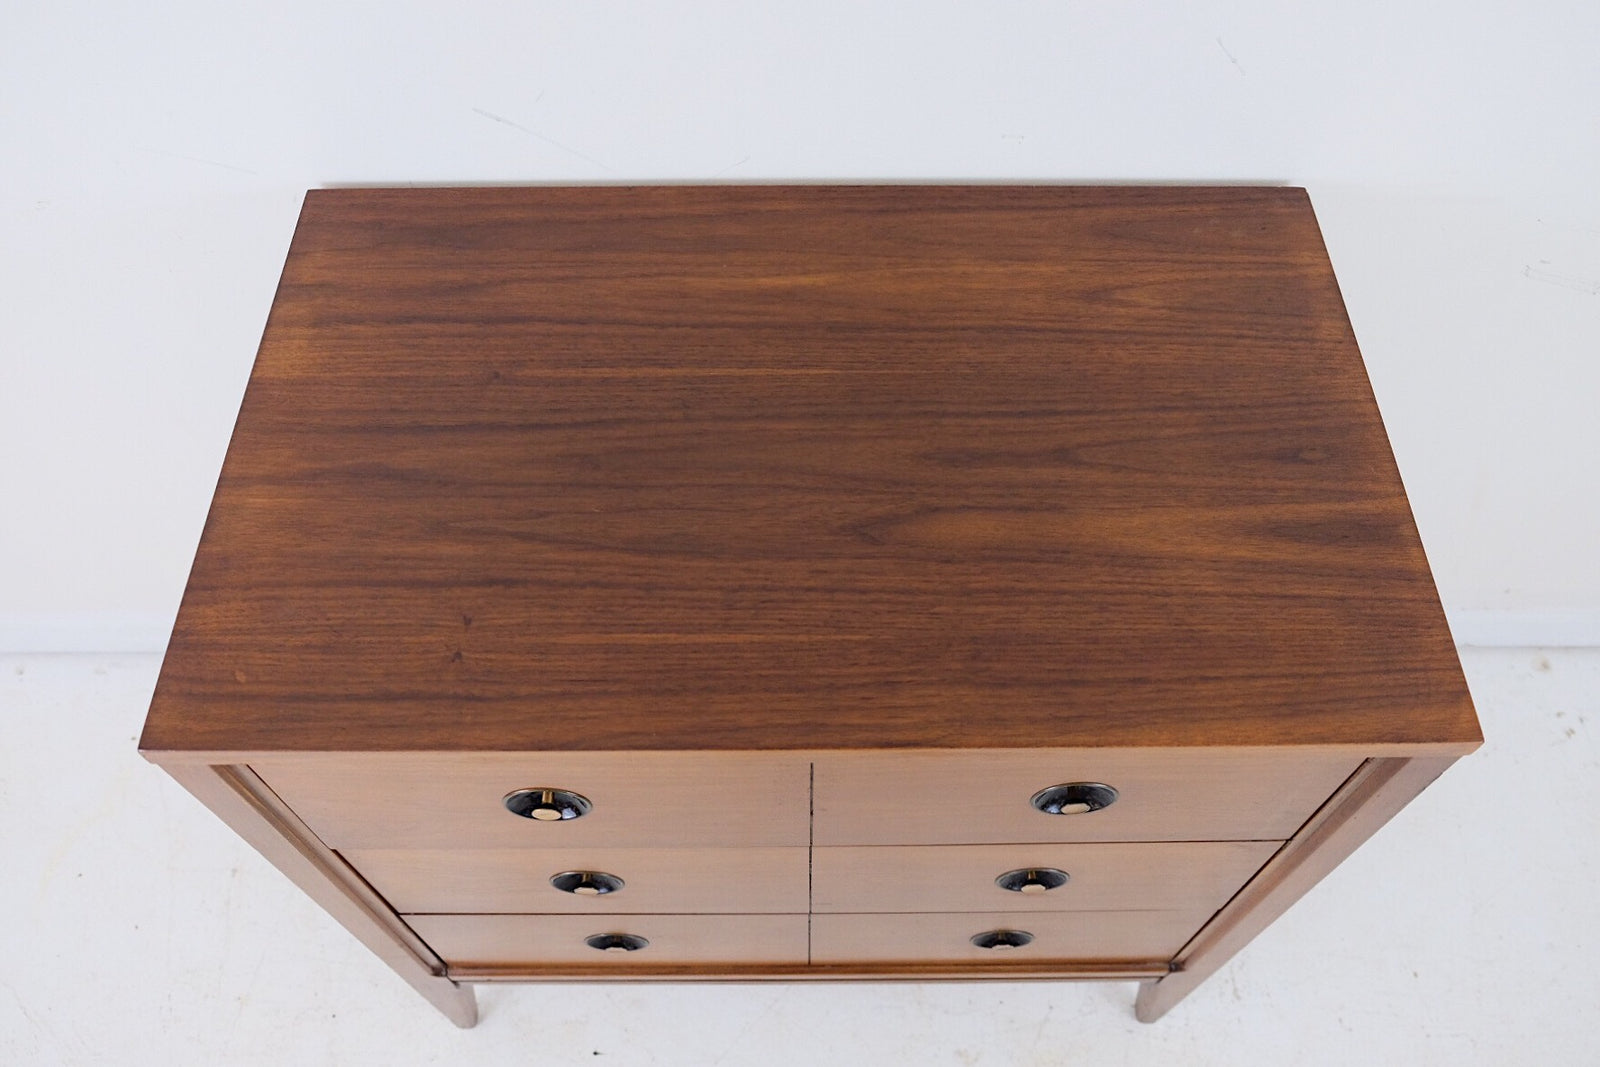 Bachelors Chest Basic Witz Mid Century Modern Three Drawers Black Enameled Hammered Concave Details Brass Pulls